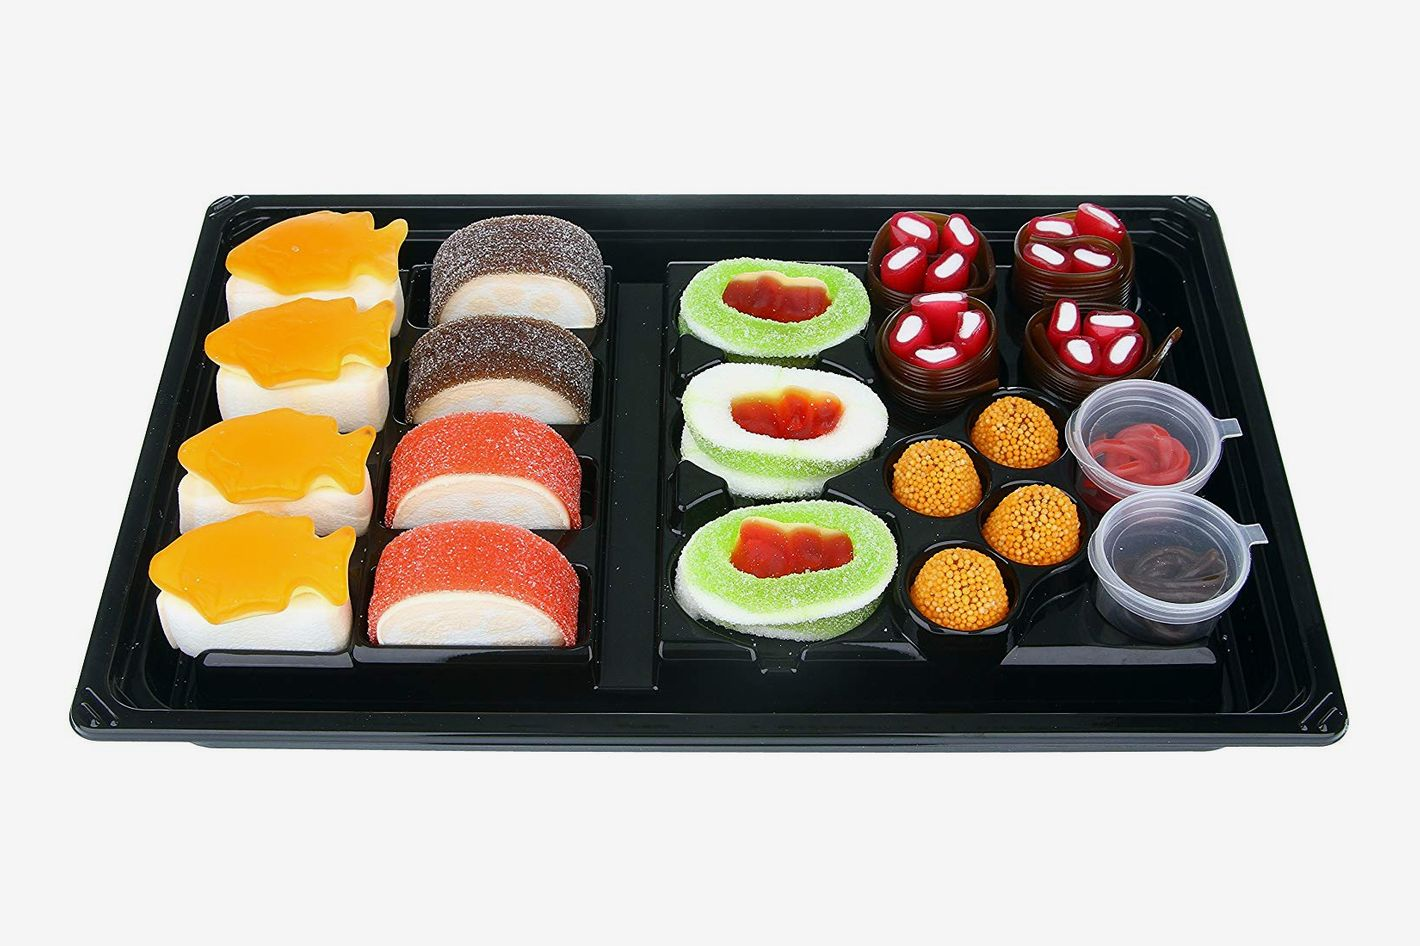 Raindrops Candy Gummy Sushi Bento Box